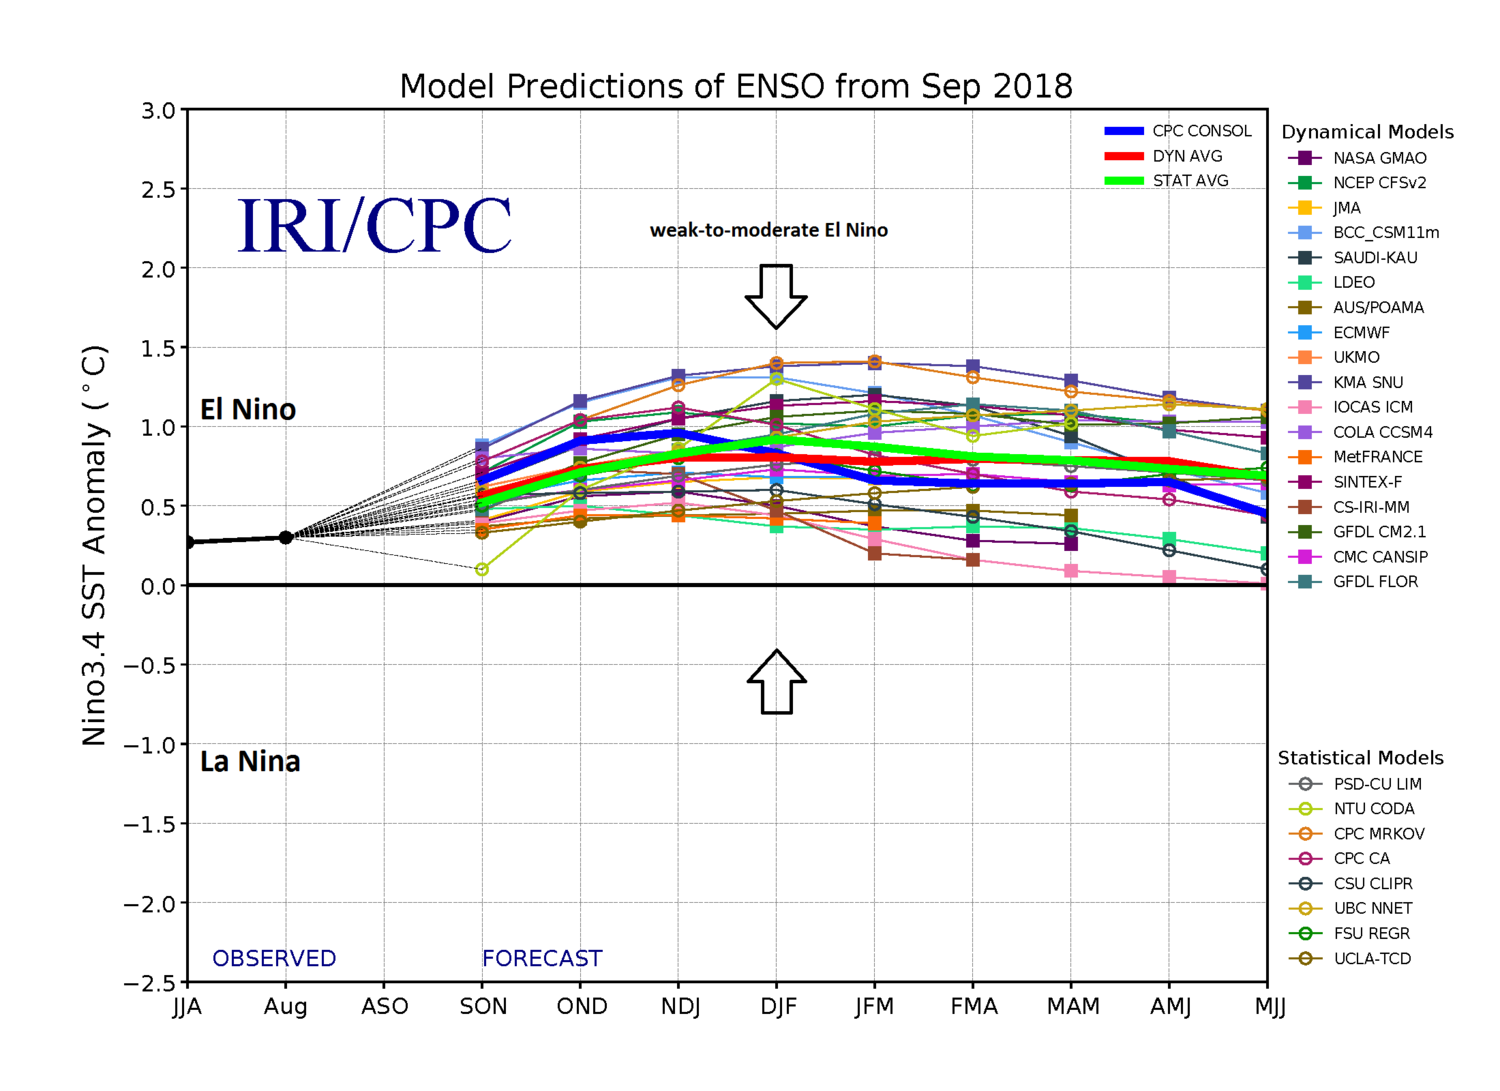 The consensus of numerous dynamical and statistical computer models is for a weak-to-moderate El Nino this winter season in the equatorial part of the Pacific Ocean; courtesy NOAA, NASA, ECMWF, IRI/CPC